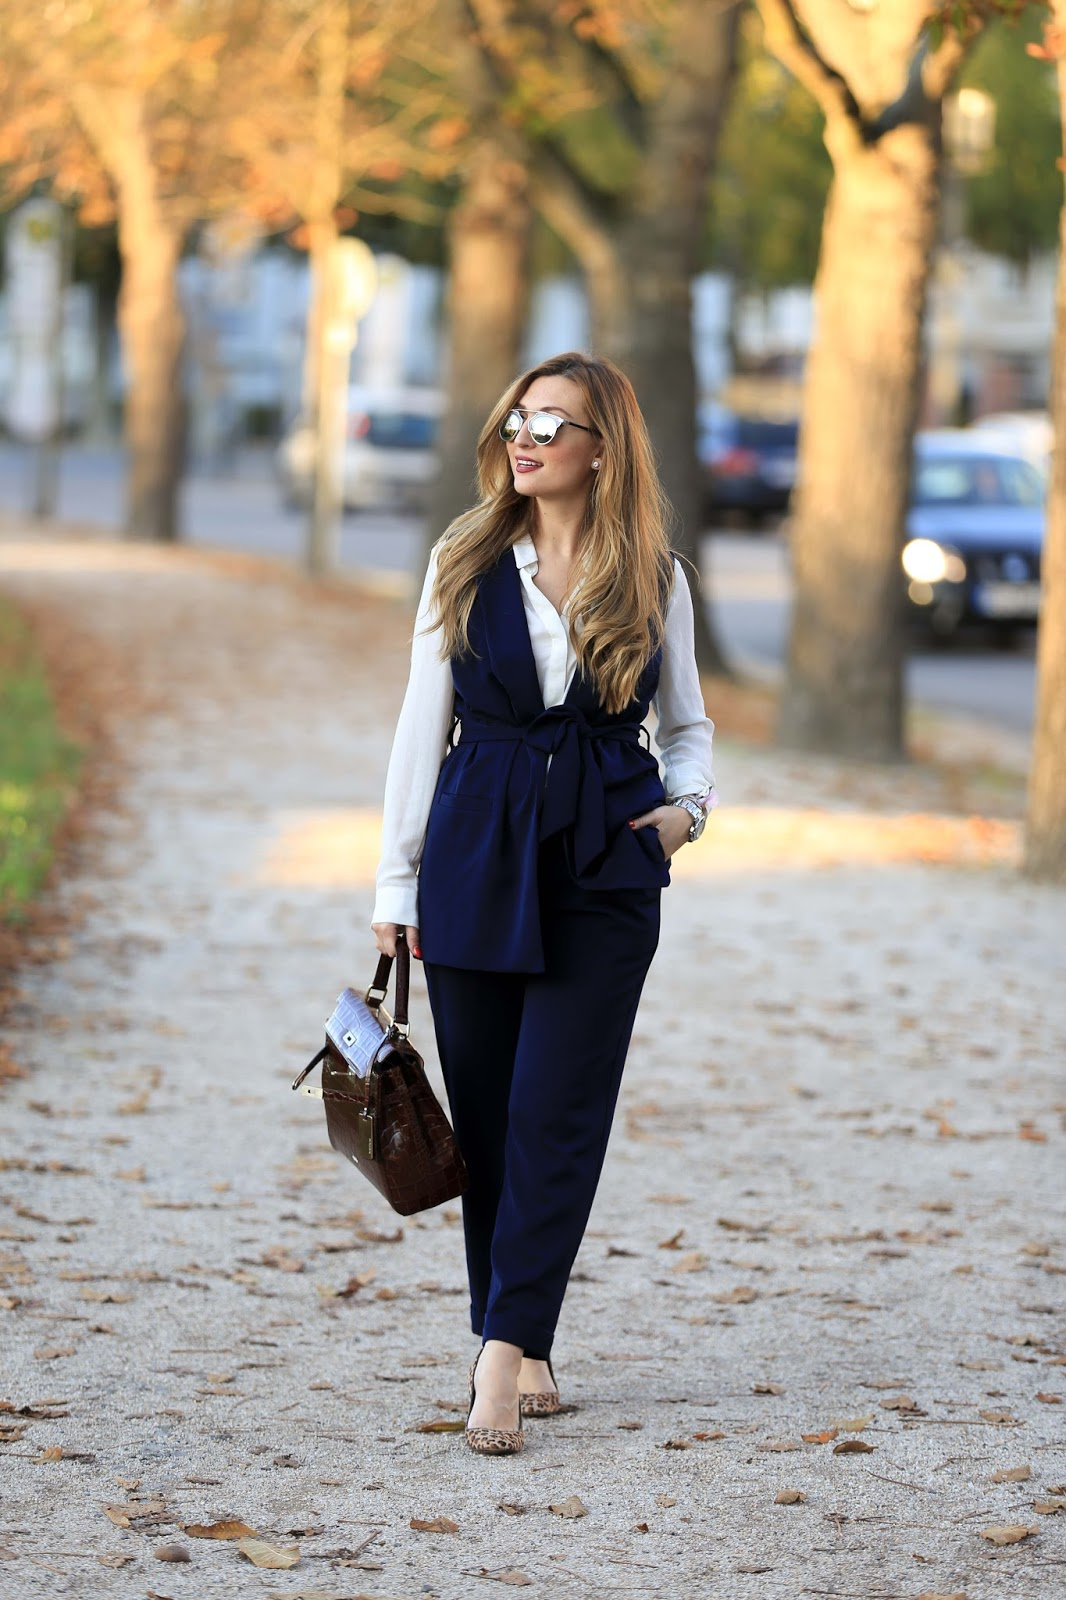 Dior Sonnenbrille-Blogger mit Dior sonnenbrille-casual Chic Look-Blogger-Fashionblogger-Streetsylelook-Streetstyleblogger-Fashionstylebyjohanna-Olivia Palermo Style -Business look- Casual Look- Chic